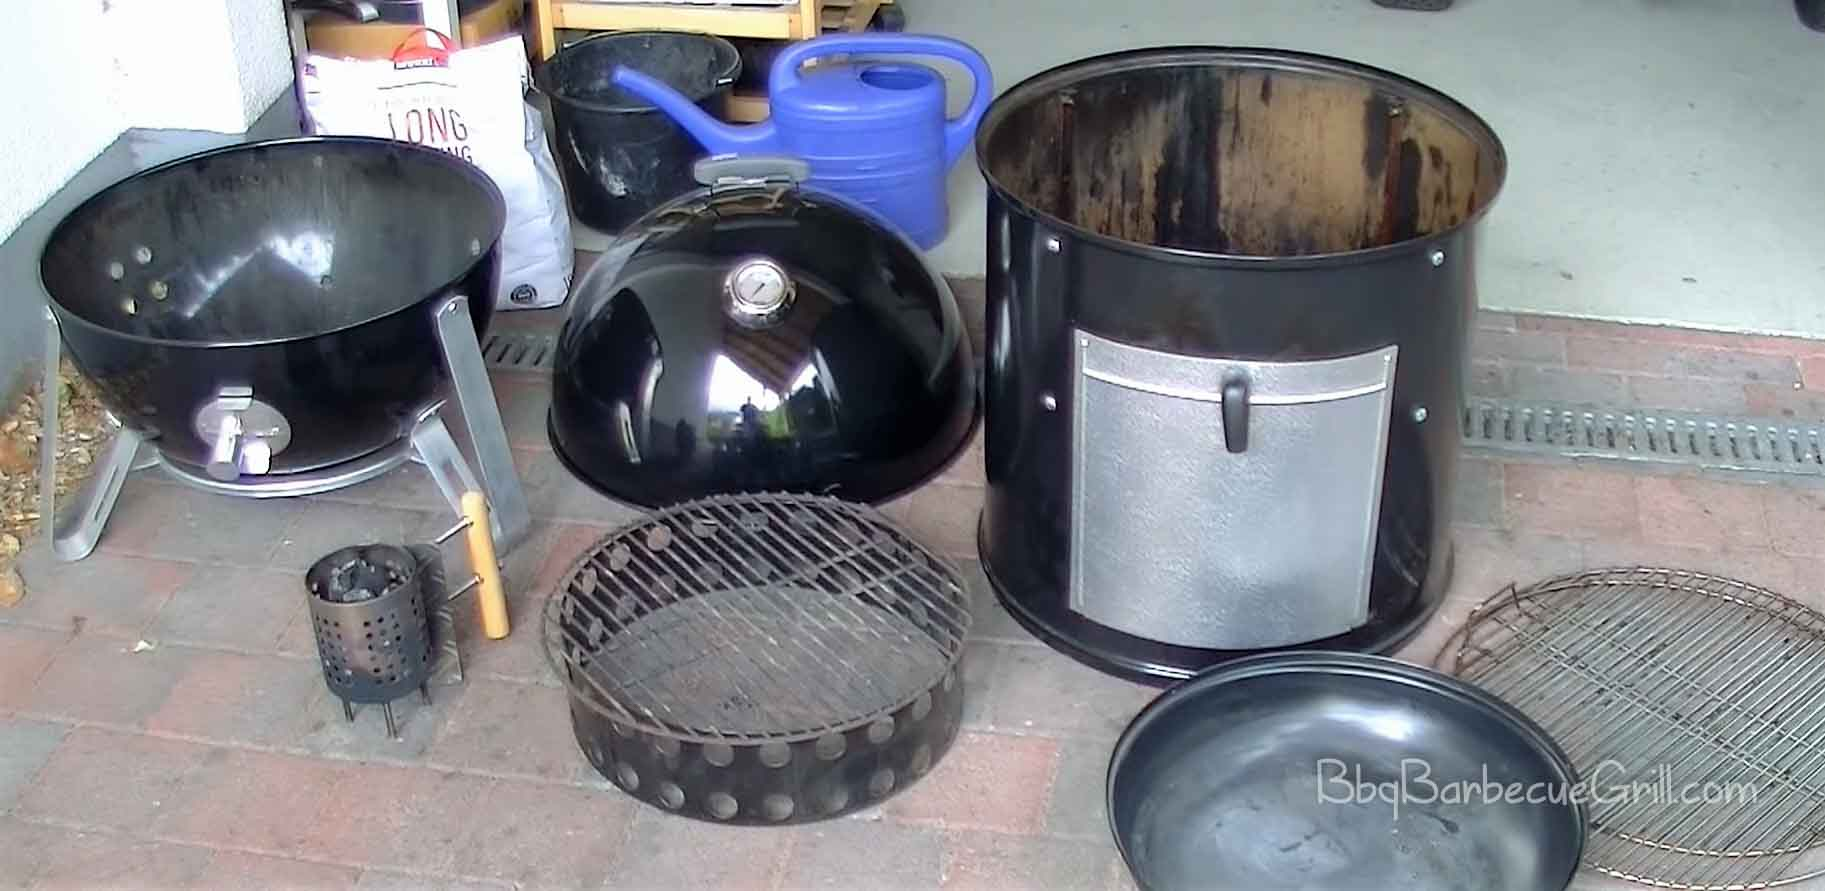 How to Use a Weber Smoker